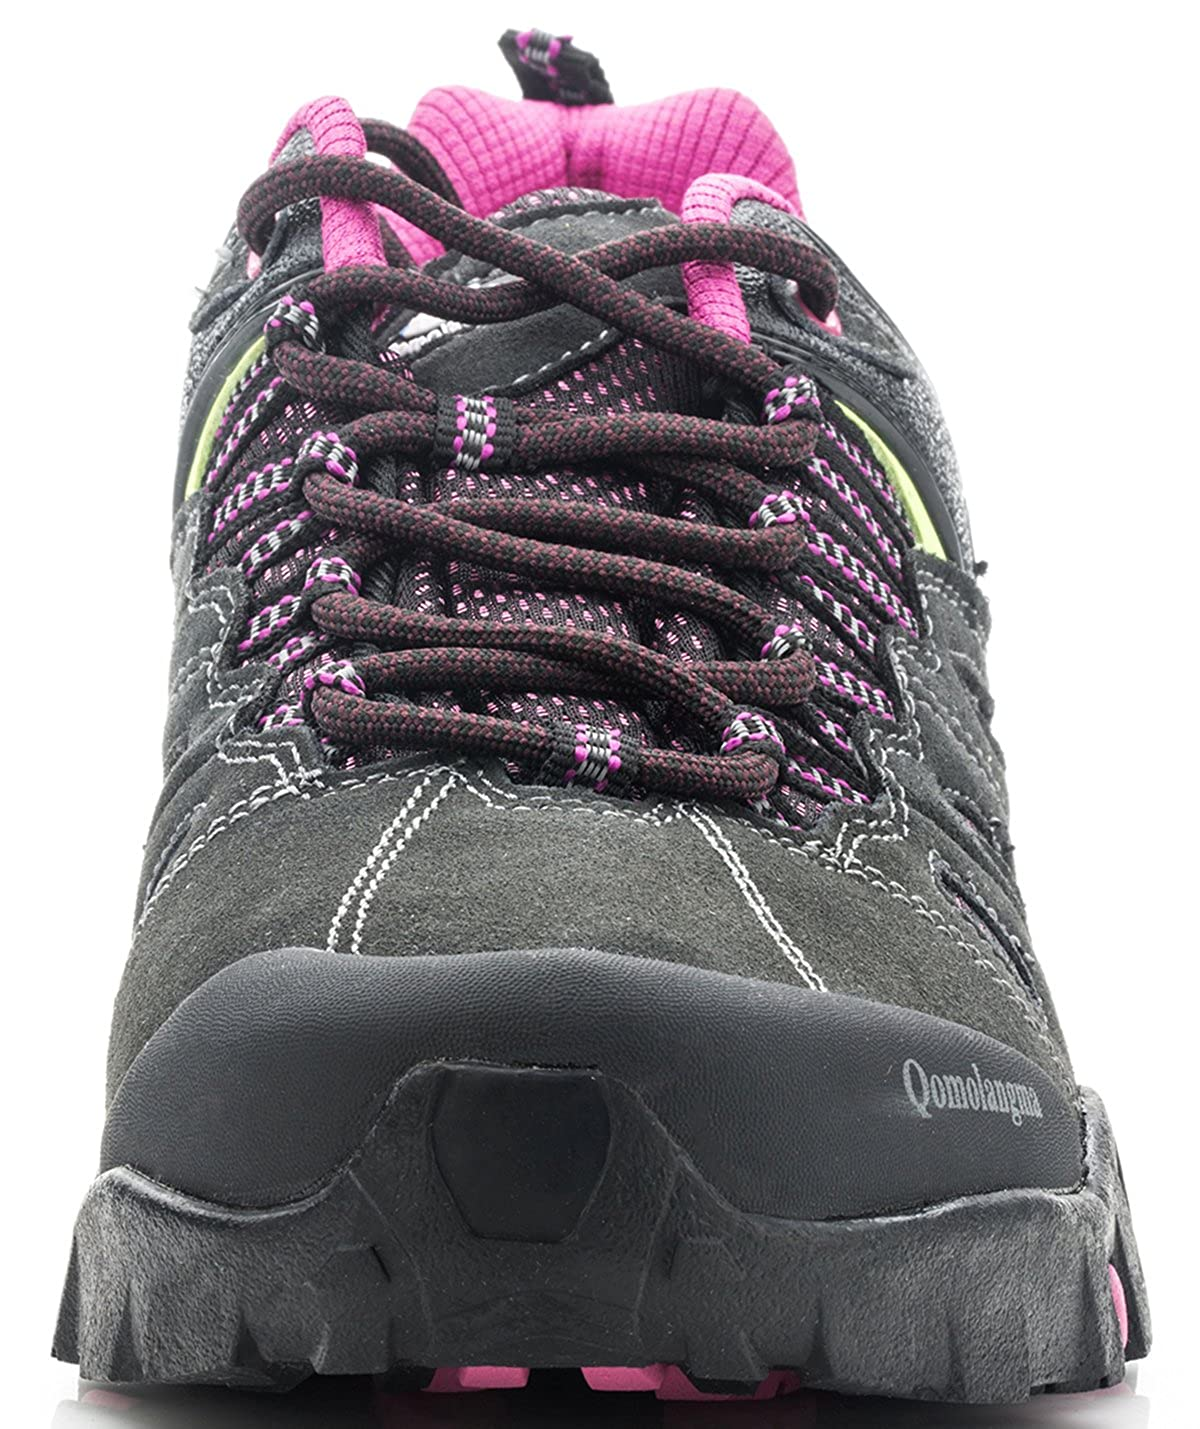 Qomolangma Women's girl's Lightweight Breathable Casual Outdoor sport  Hiking Shoes Lace Up: Amazon.ca: Shoes & Handbags